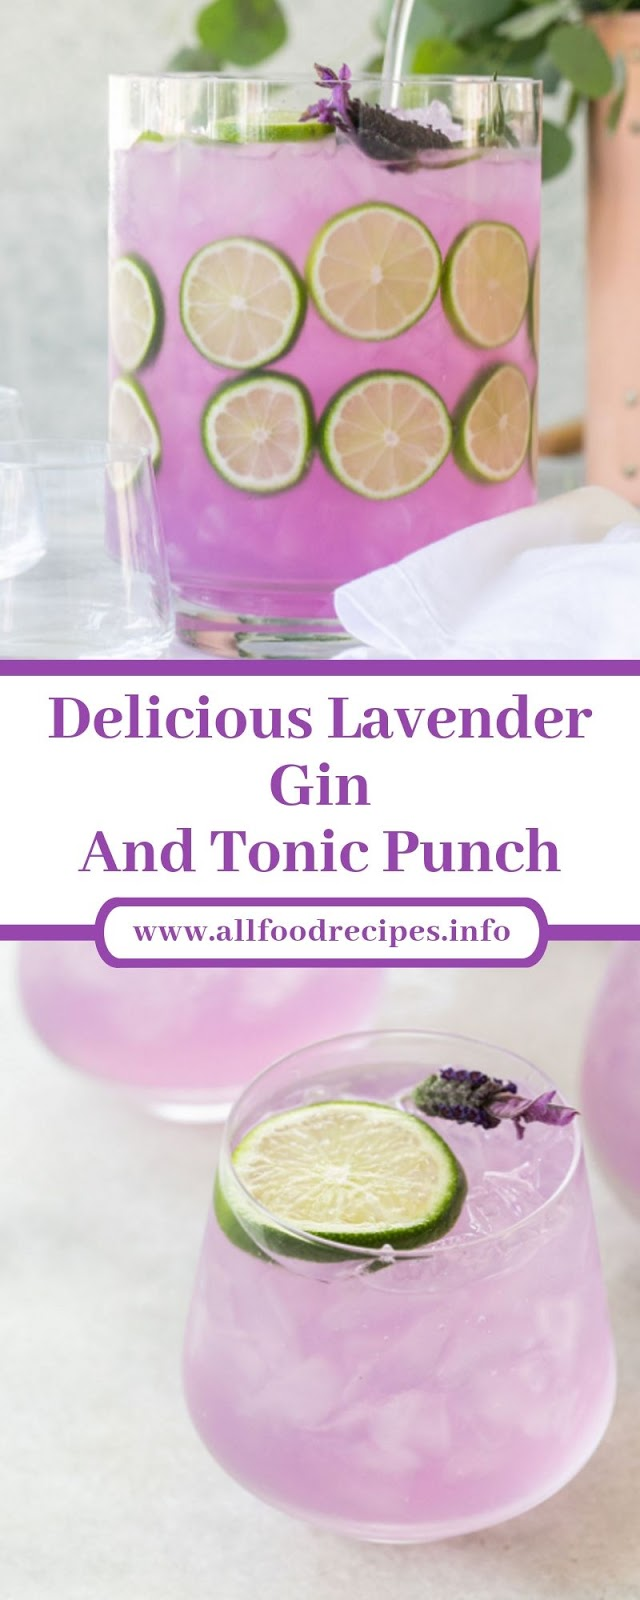 Delicious Lavender Gin And Tonic Punch